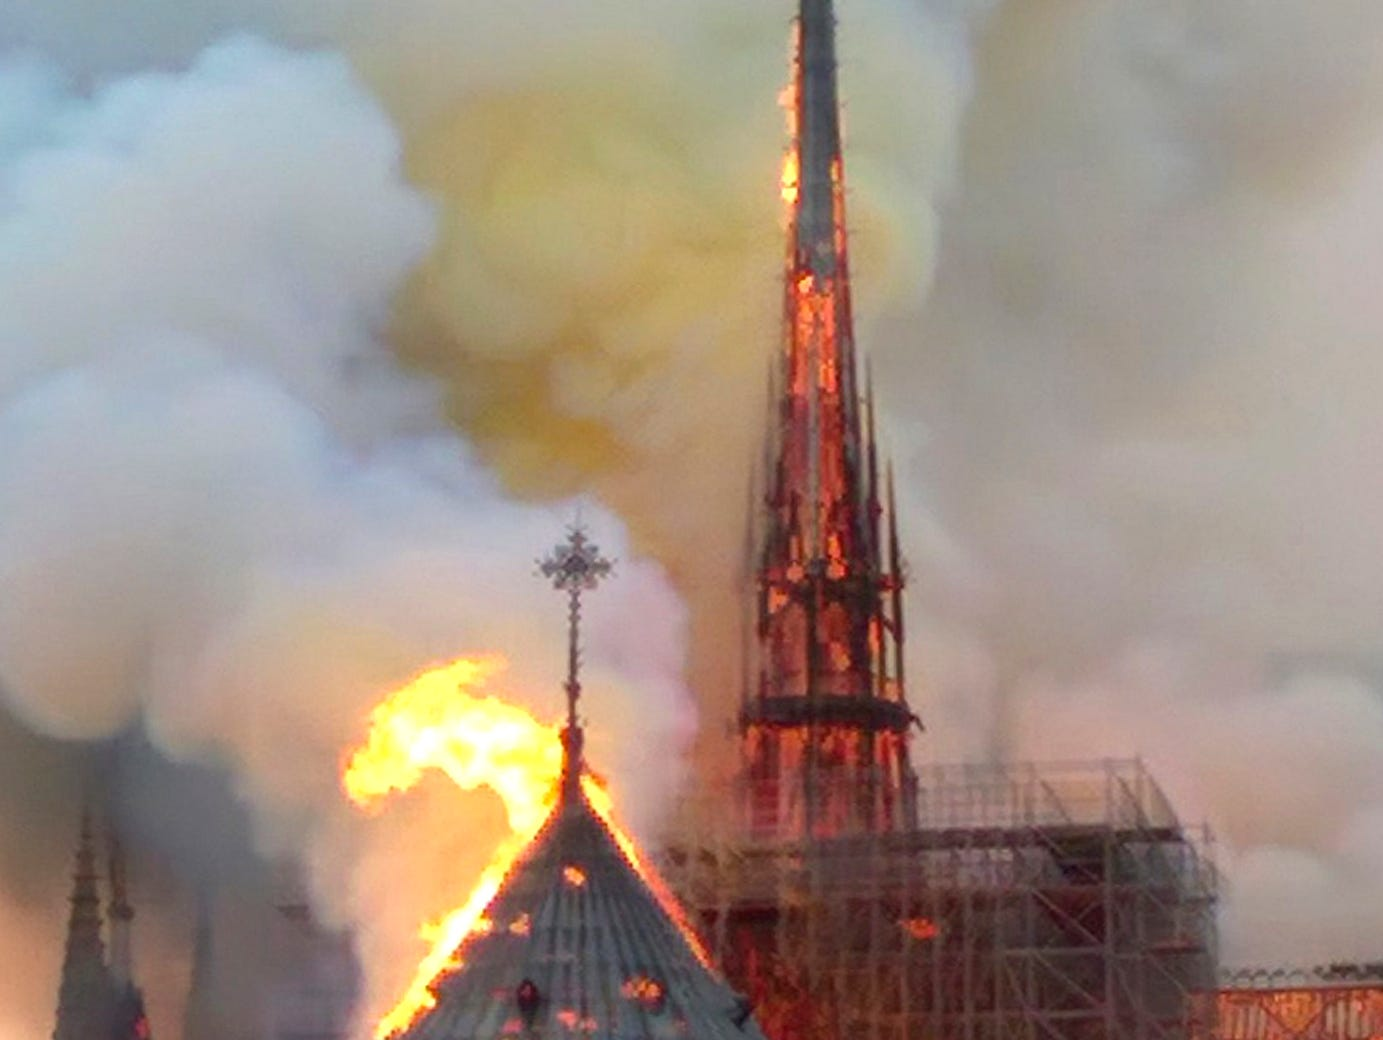 The spire and parts of Notre Dame cathedral is on fire in Paris, Monday, April 15, 2019. A catastrophic fire engulfed the upper reaches of Paris' soaring Notre Dame Cathedral as it was undergoing renovations Monday, threatening one of the greatest architectural treasures of the Western world as tourists and Parisians looked on aghast from the streets below.